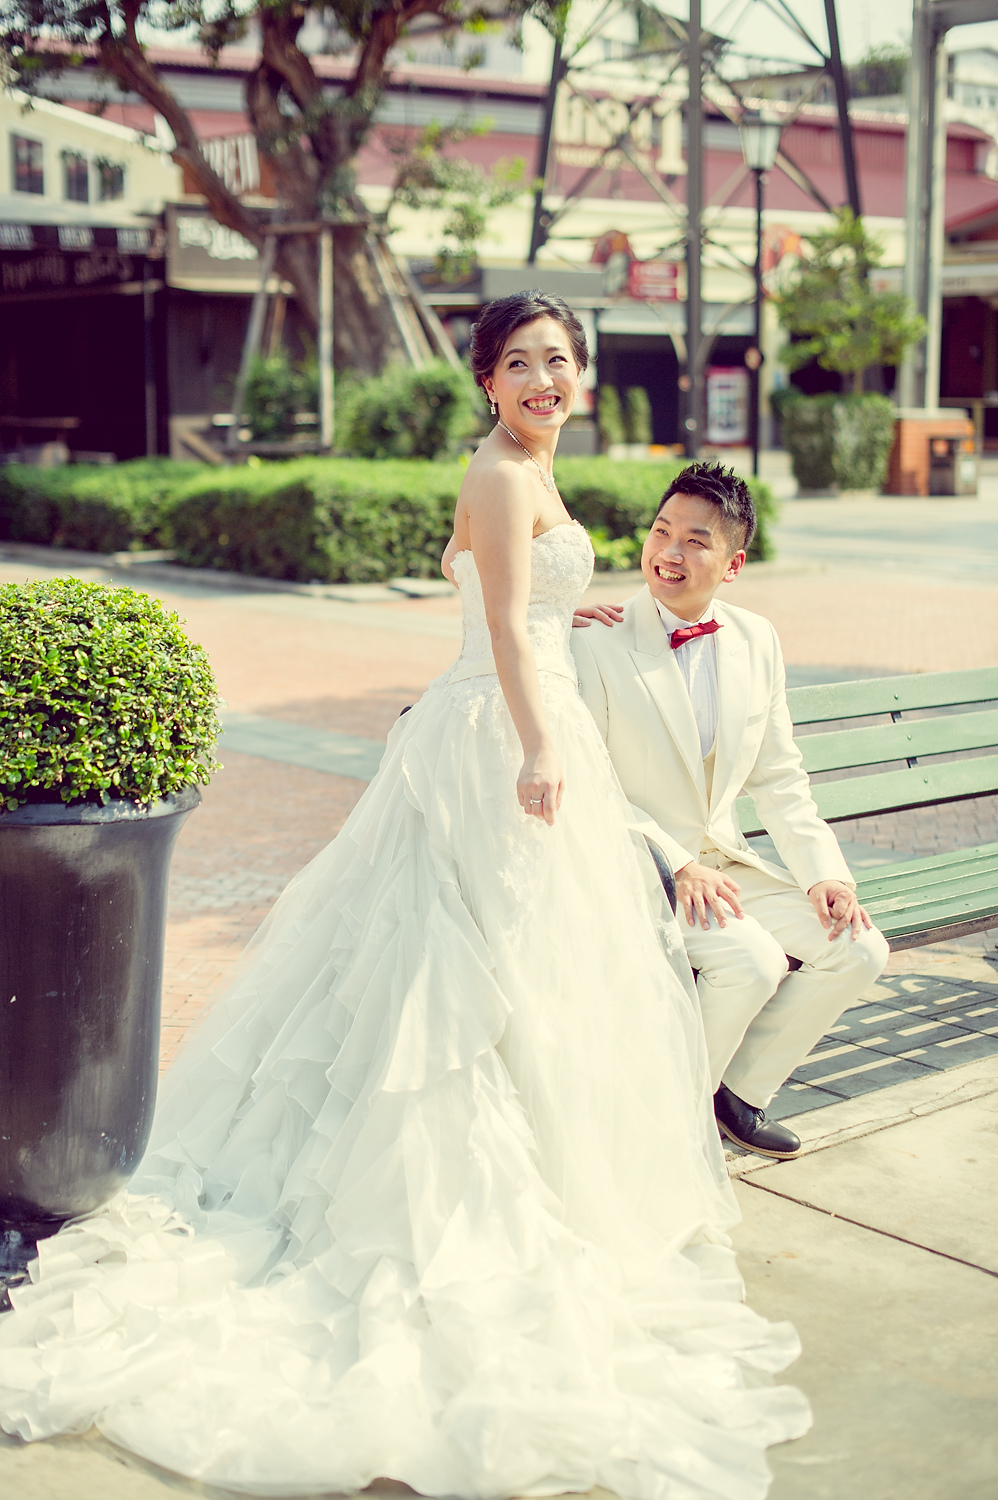 Pre-Wedding at Asiatique The Riverfront in Bangkok Thailand | Bangkok Wedding Photography